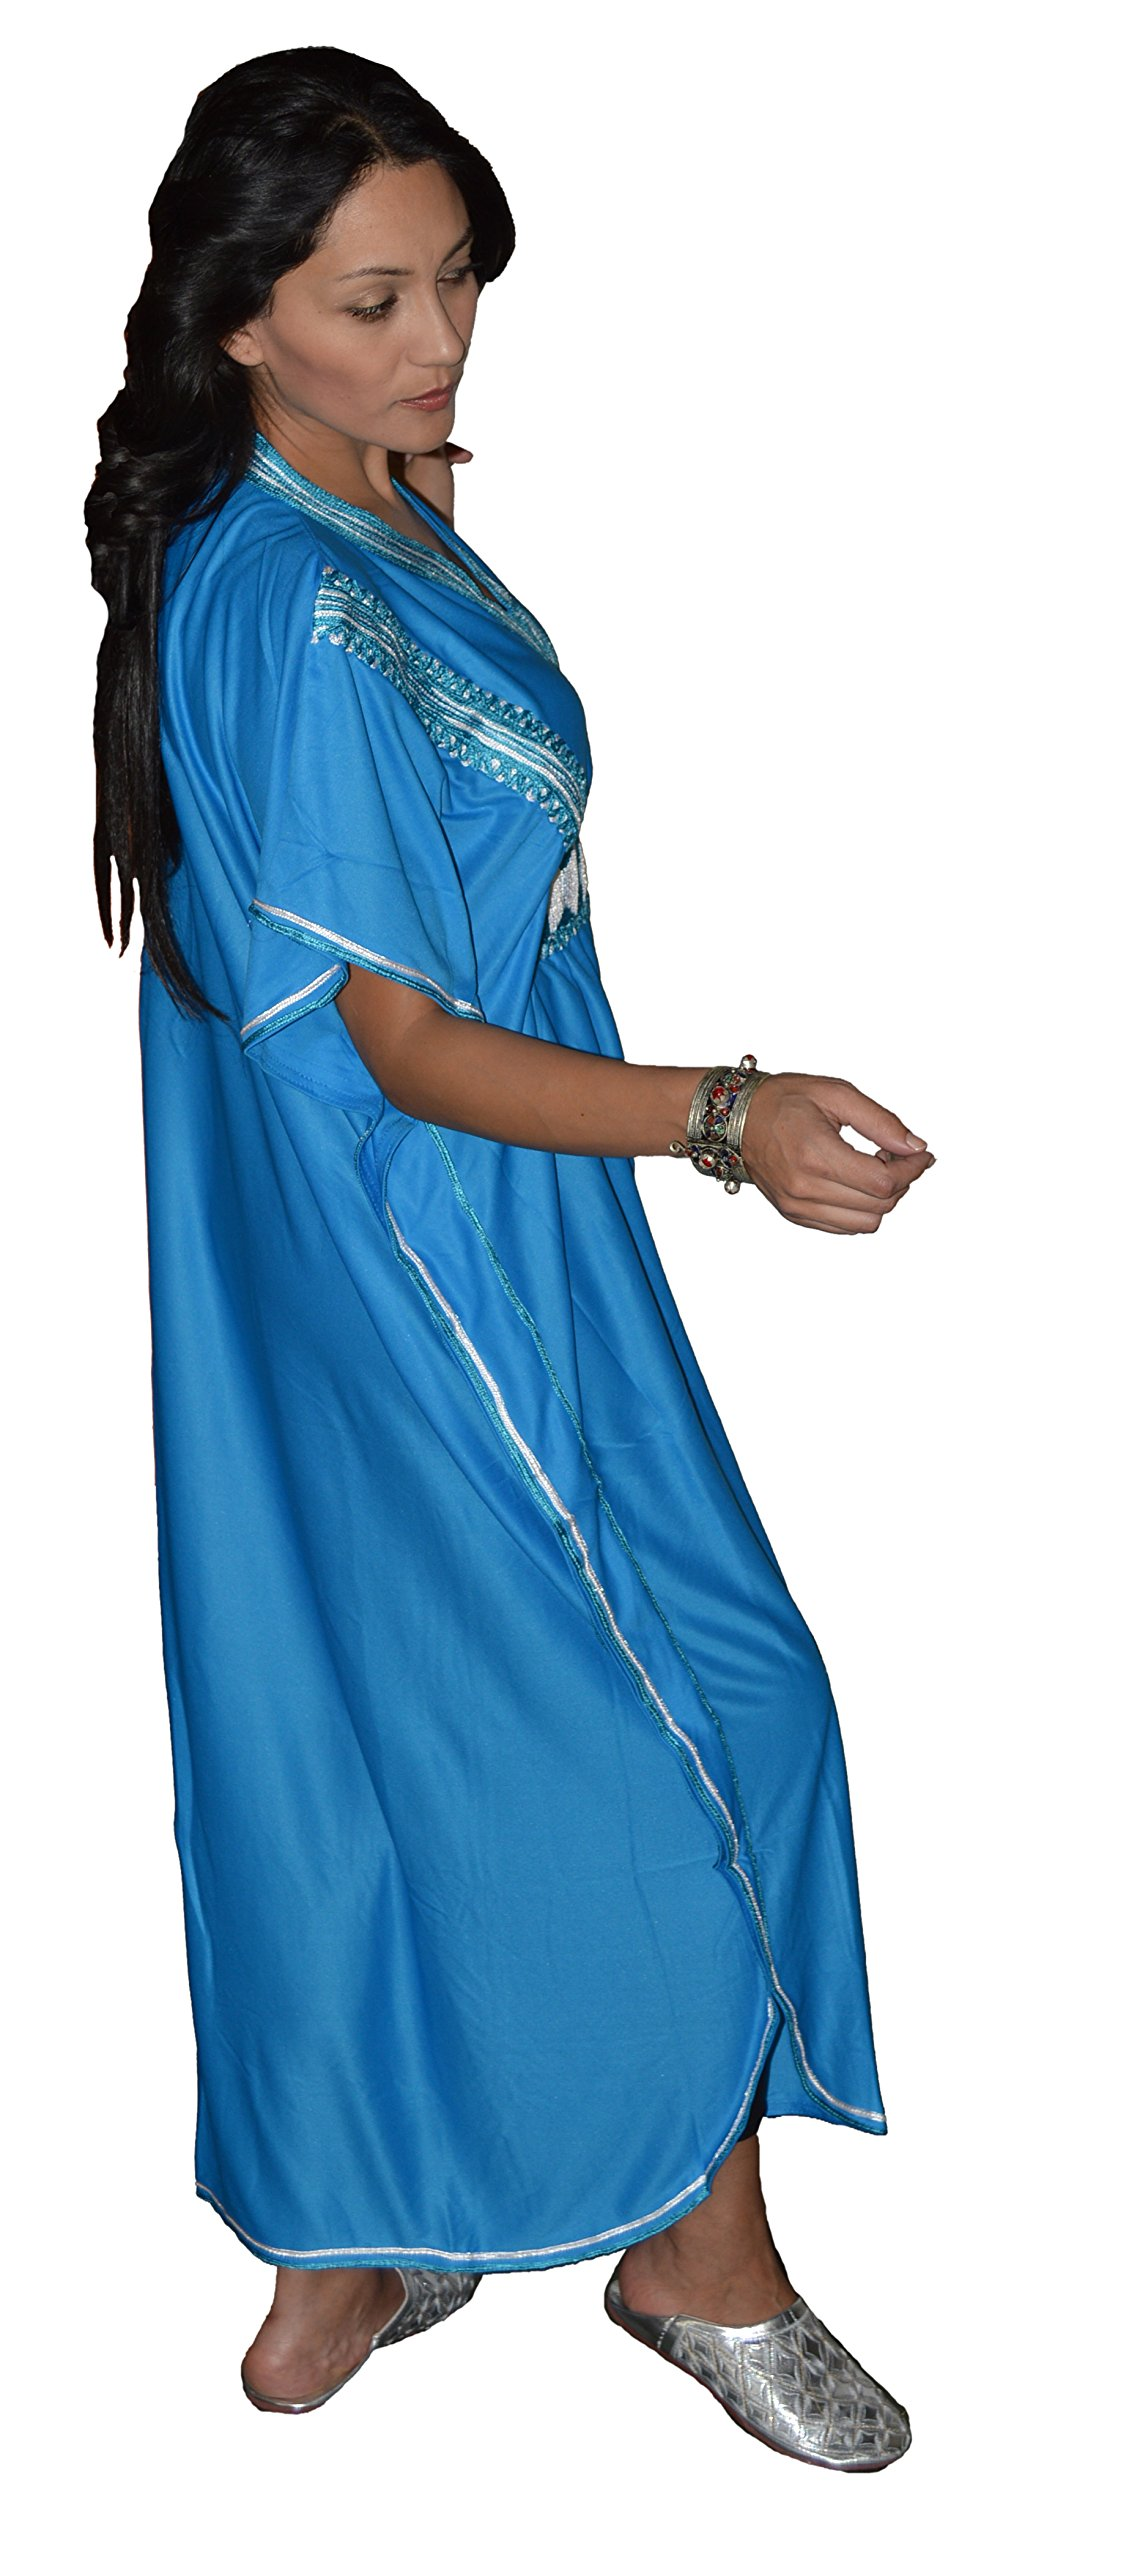 Moroccan Caftans Women Breathable Handmade Butterfly Style Embroidery Ethnic Design Blue by Moroccan Caftans (Image #4)